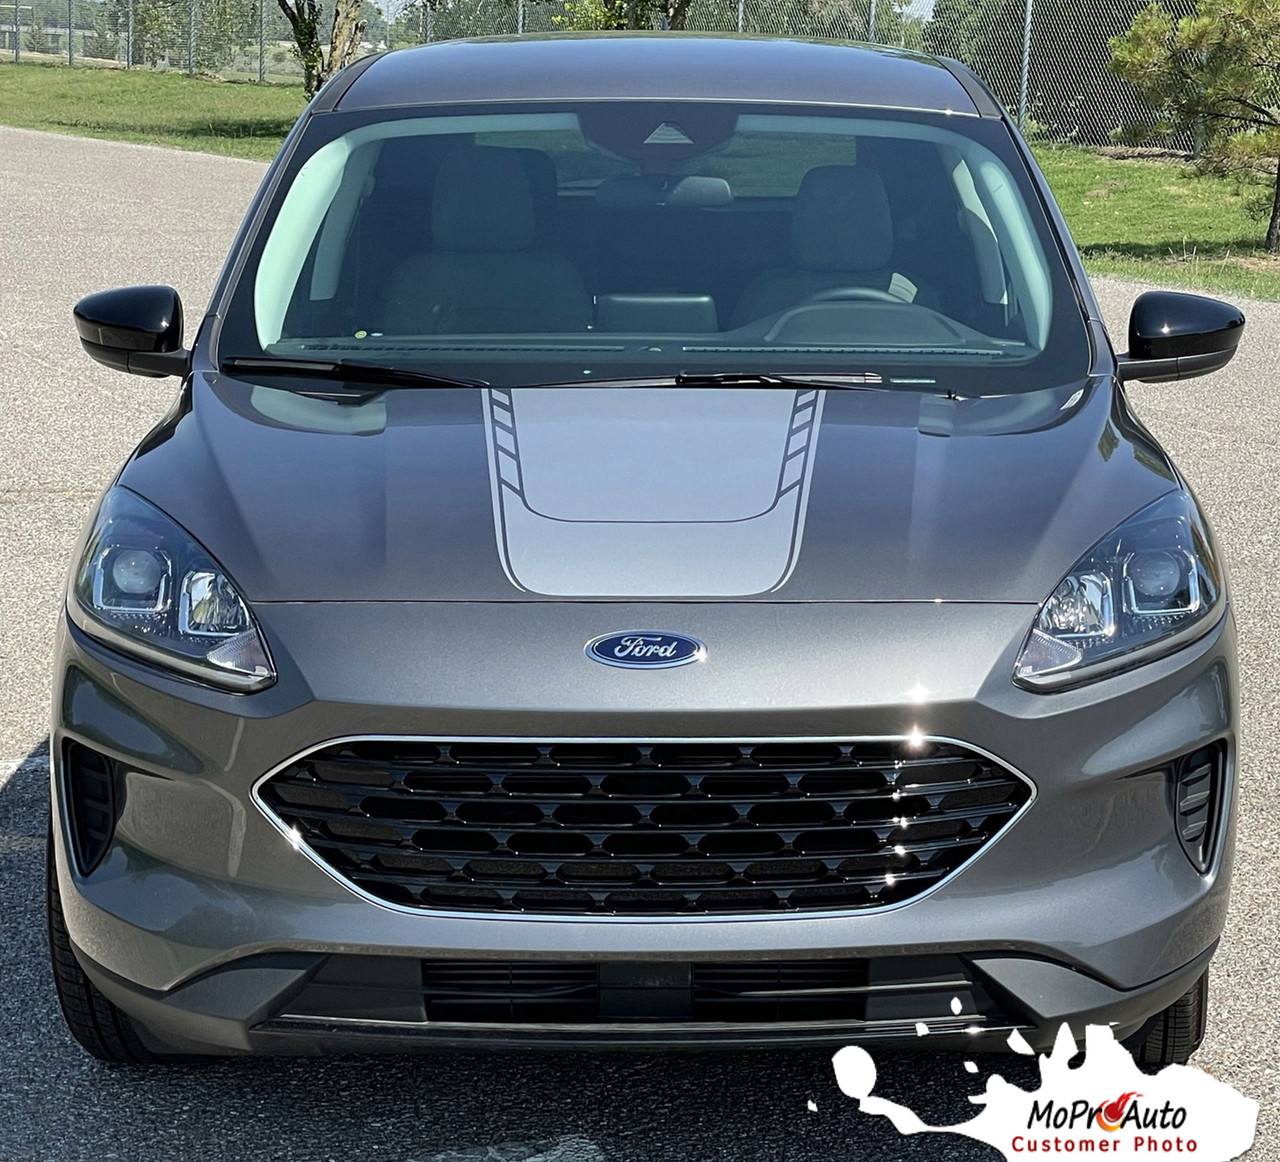 EVADE Ford Escape Decals, Vinyl Graphics, Stripes and Decals Kit